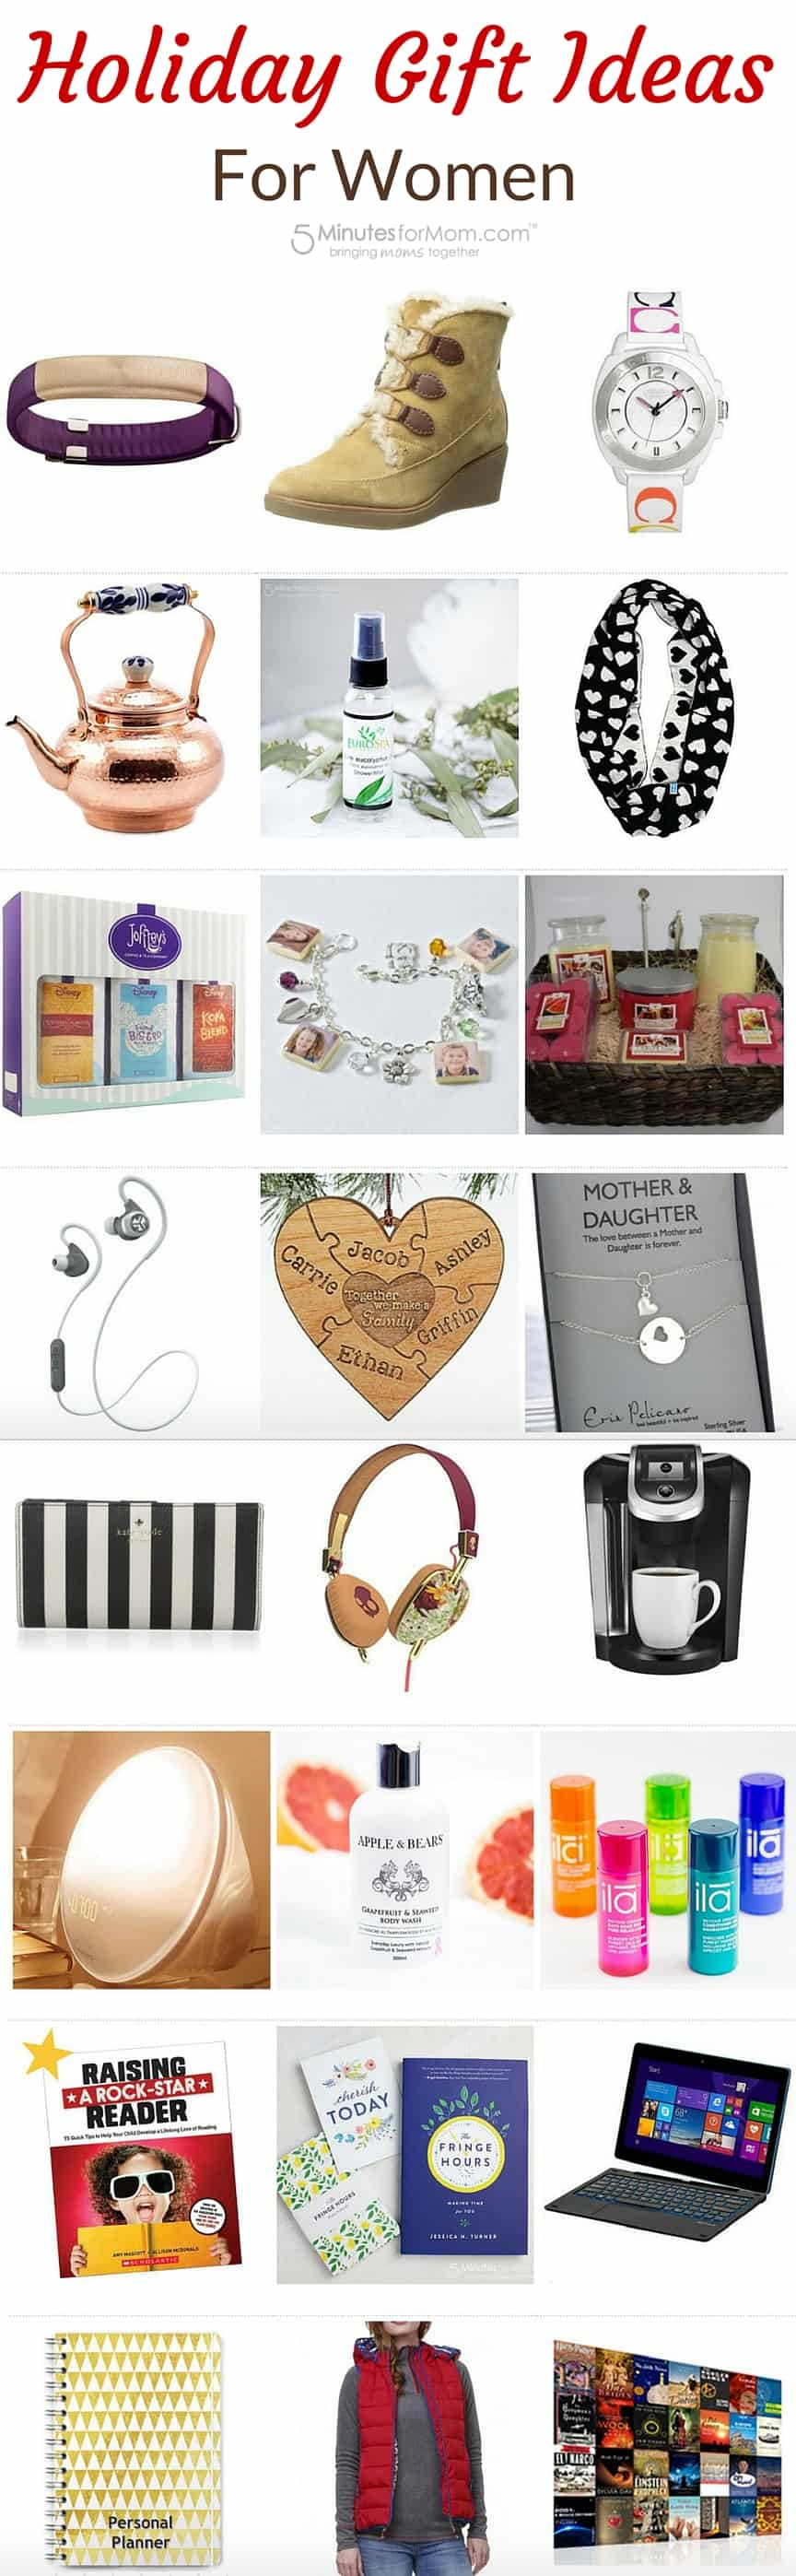 Christmas Gift Ideas For Women.2015 Holiday Gift Guide For Women